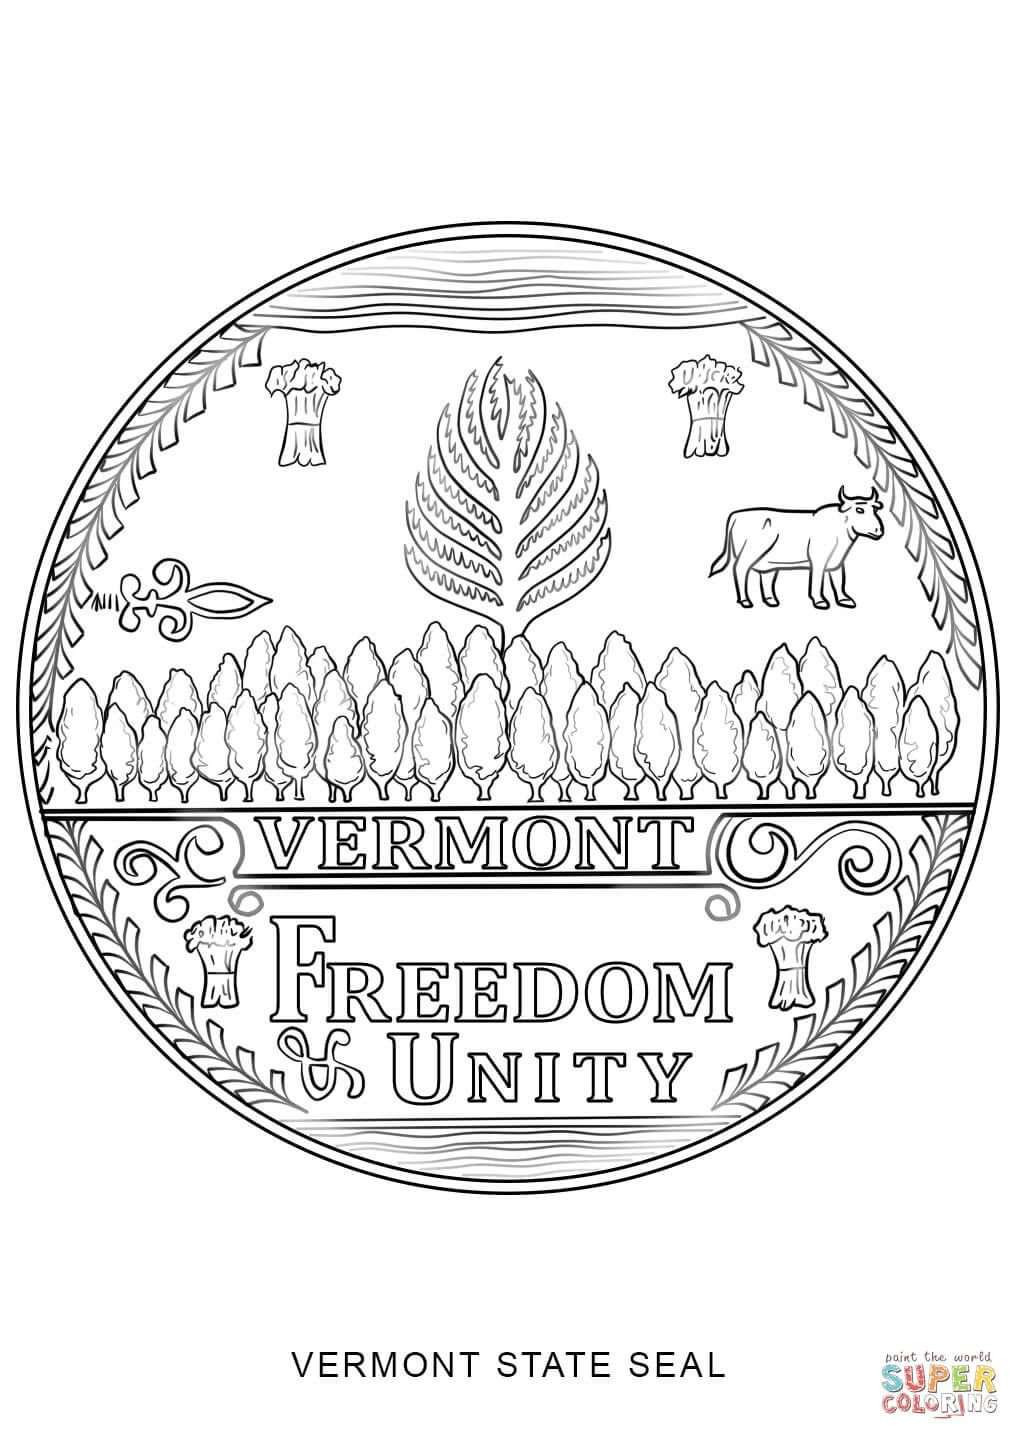 Click the Vermont State Seal coloring pages to view